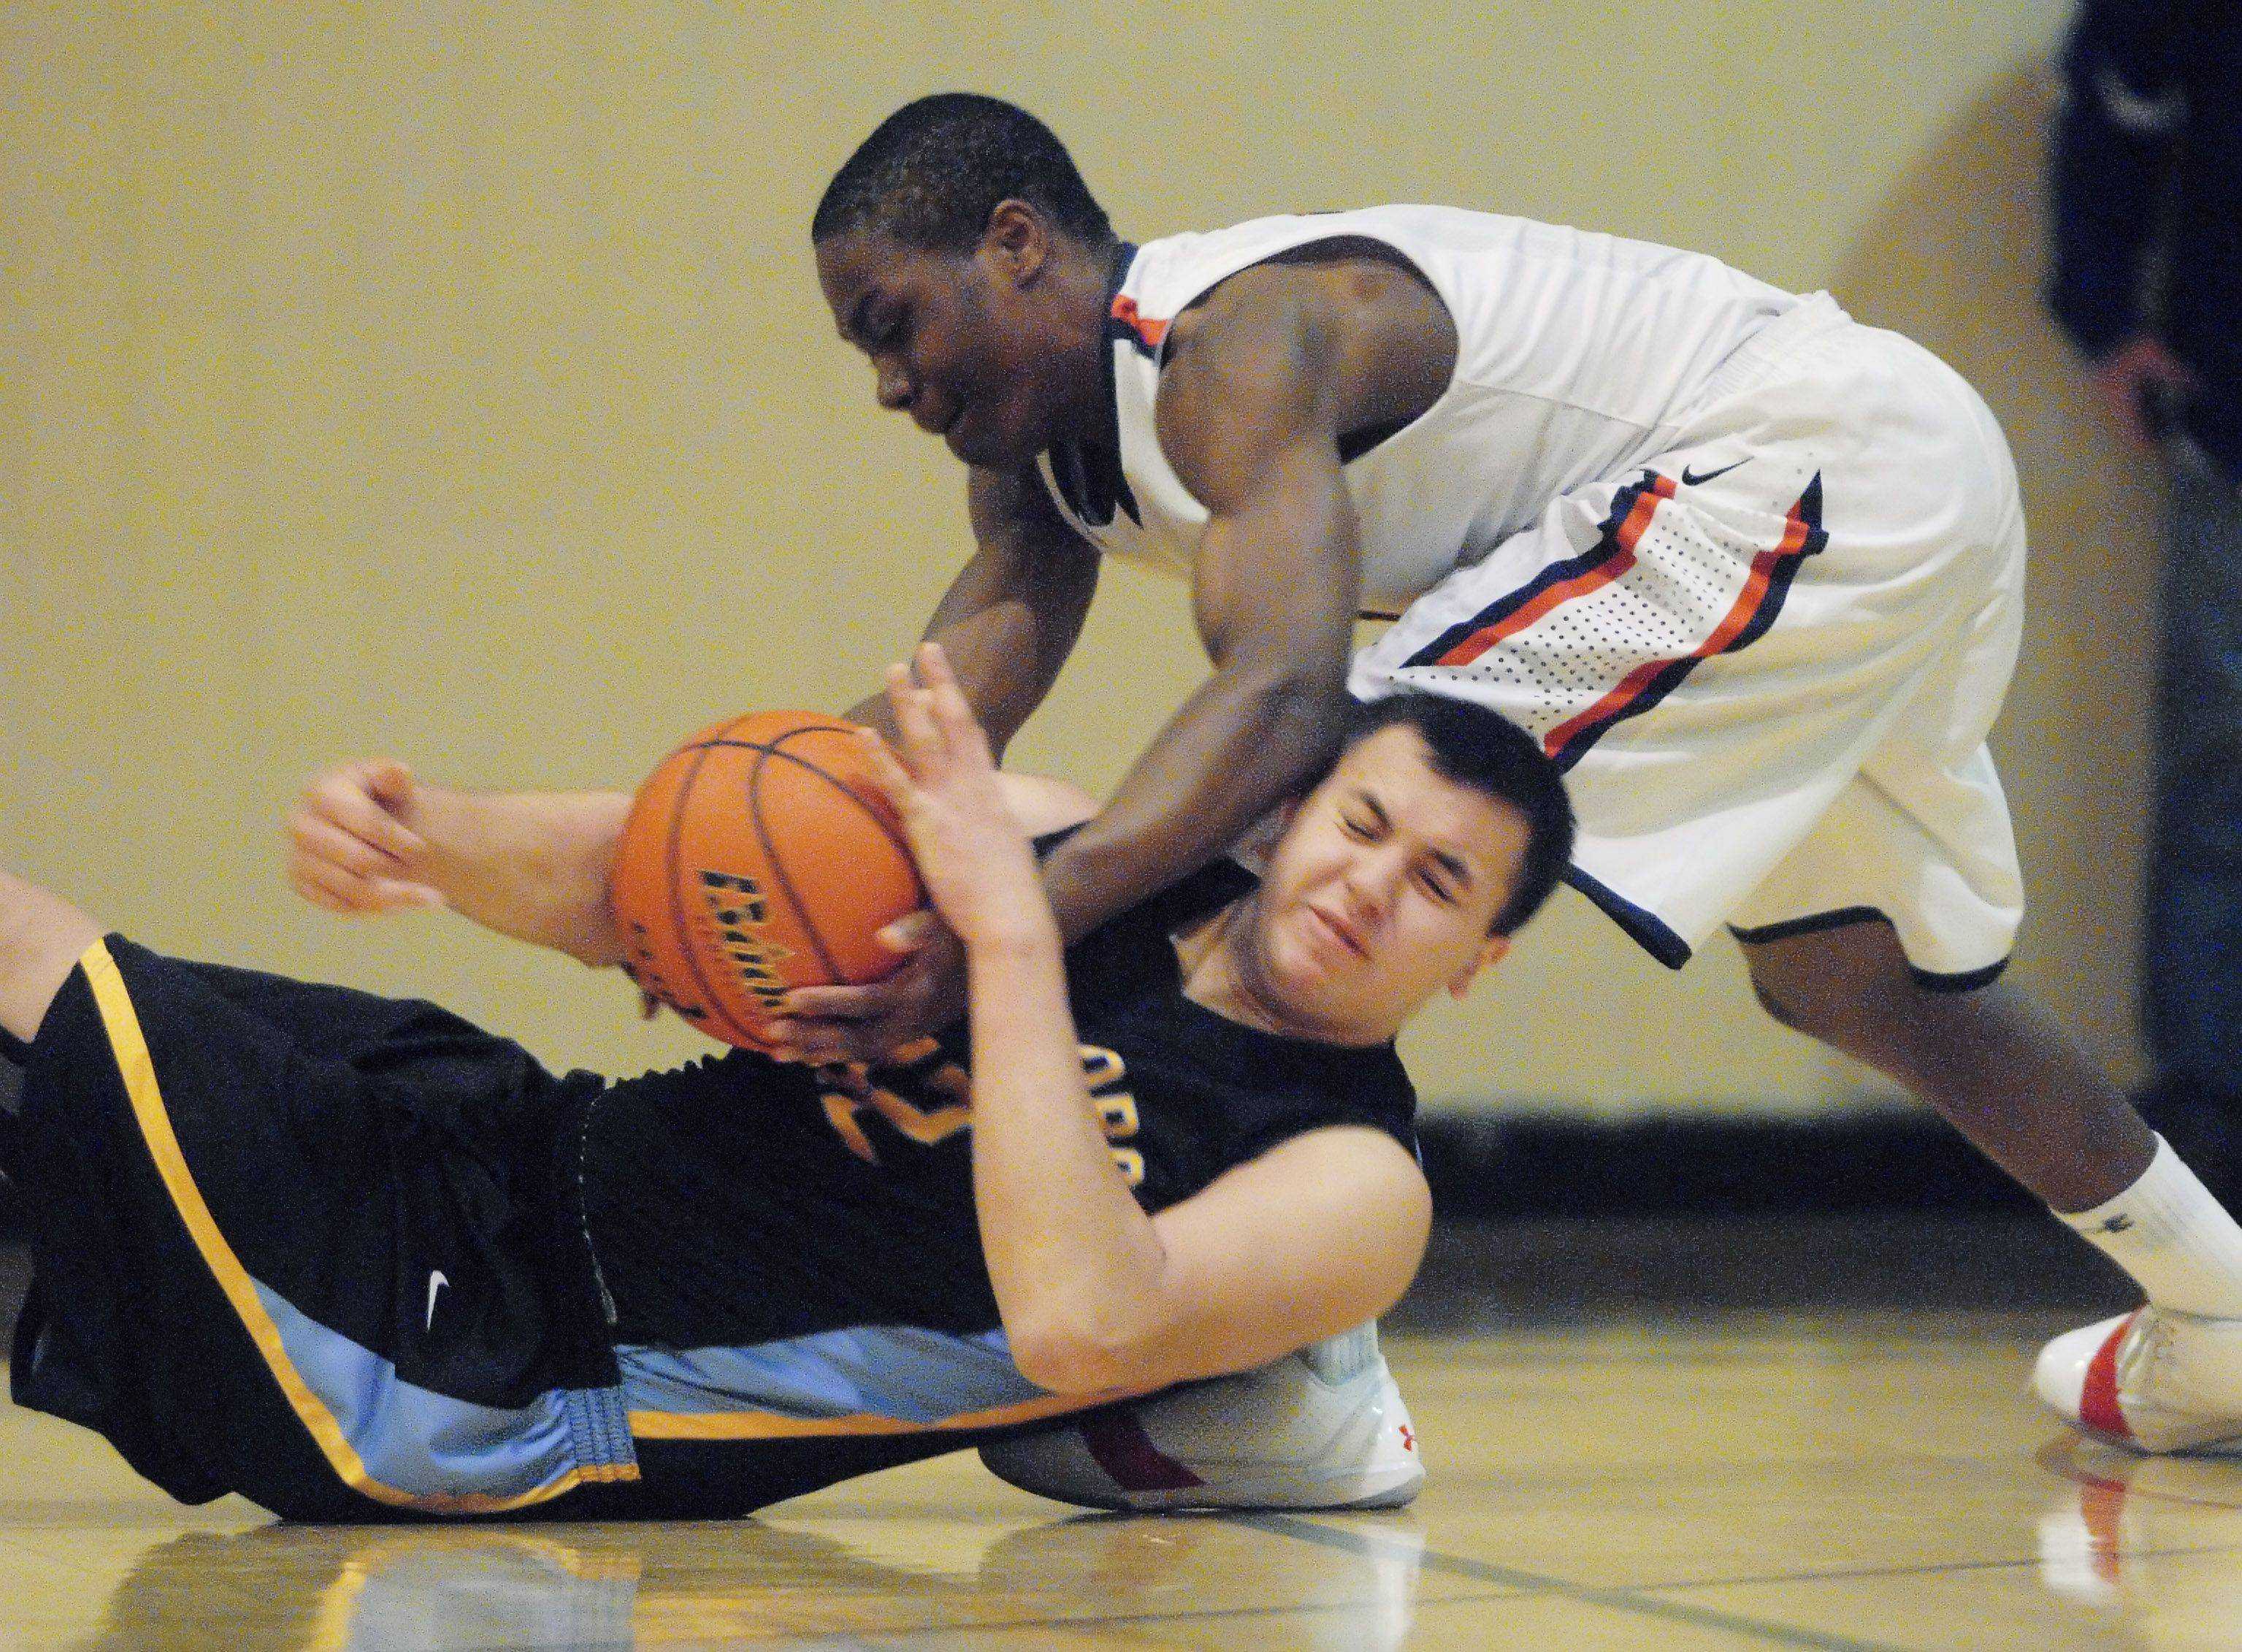 St. Viator's Mayo Arogundade takes the ball from Maine West's Matt Solis as he falls to the floor during Tuesday night's game at Wheeling.